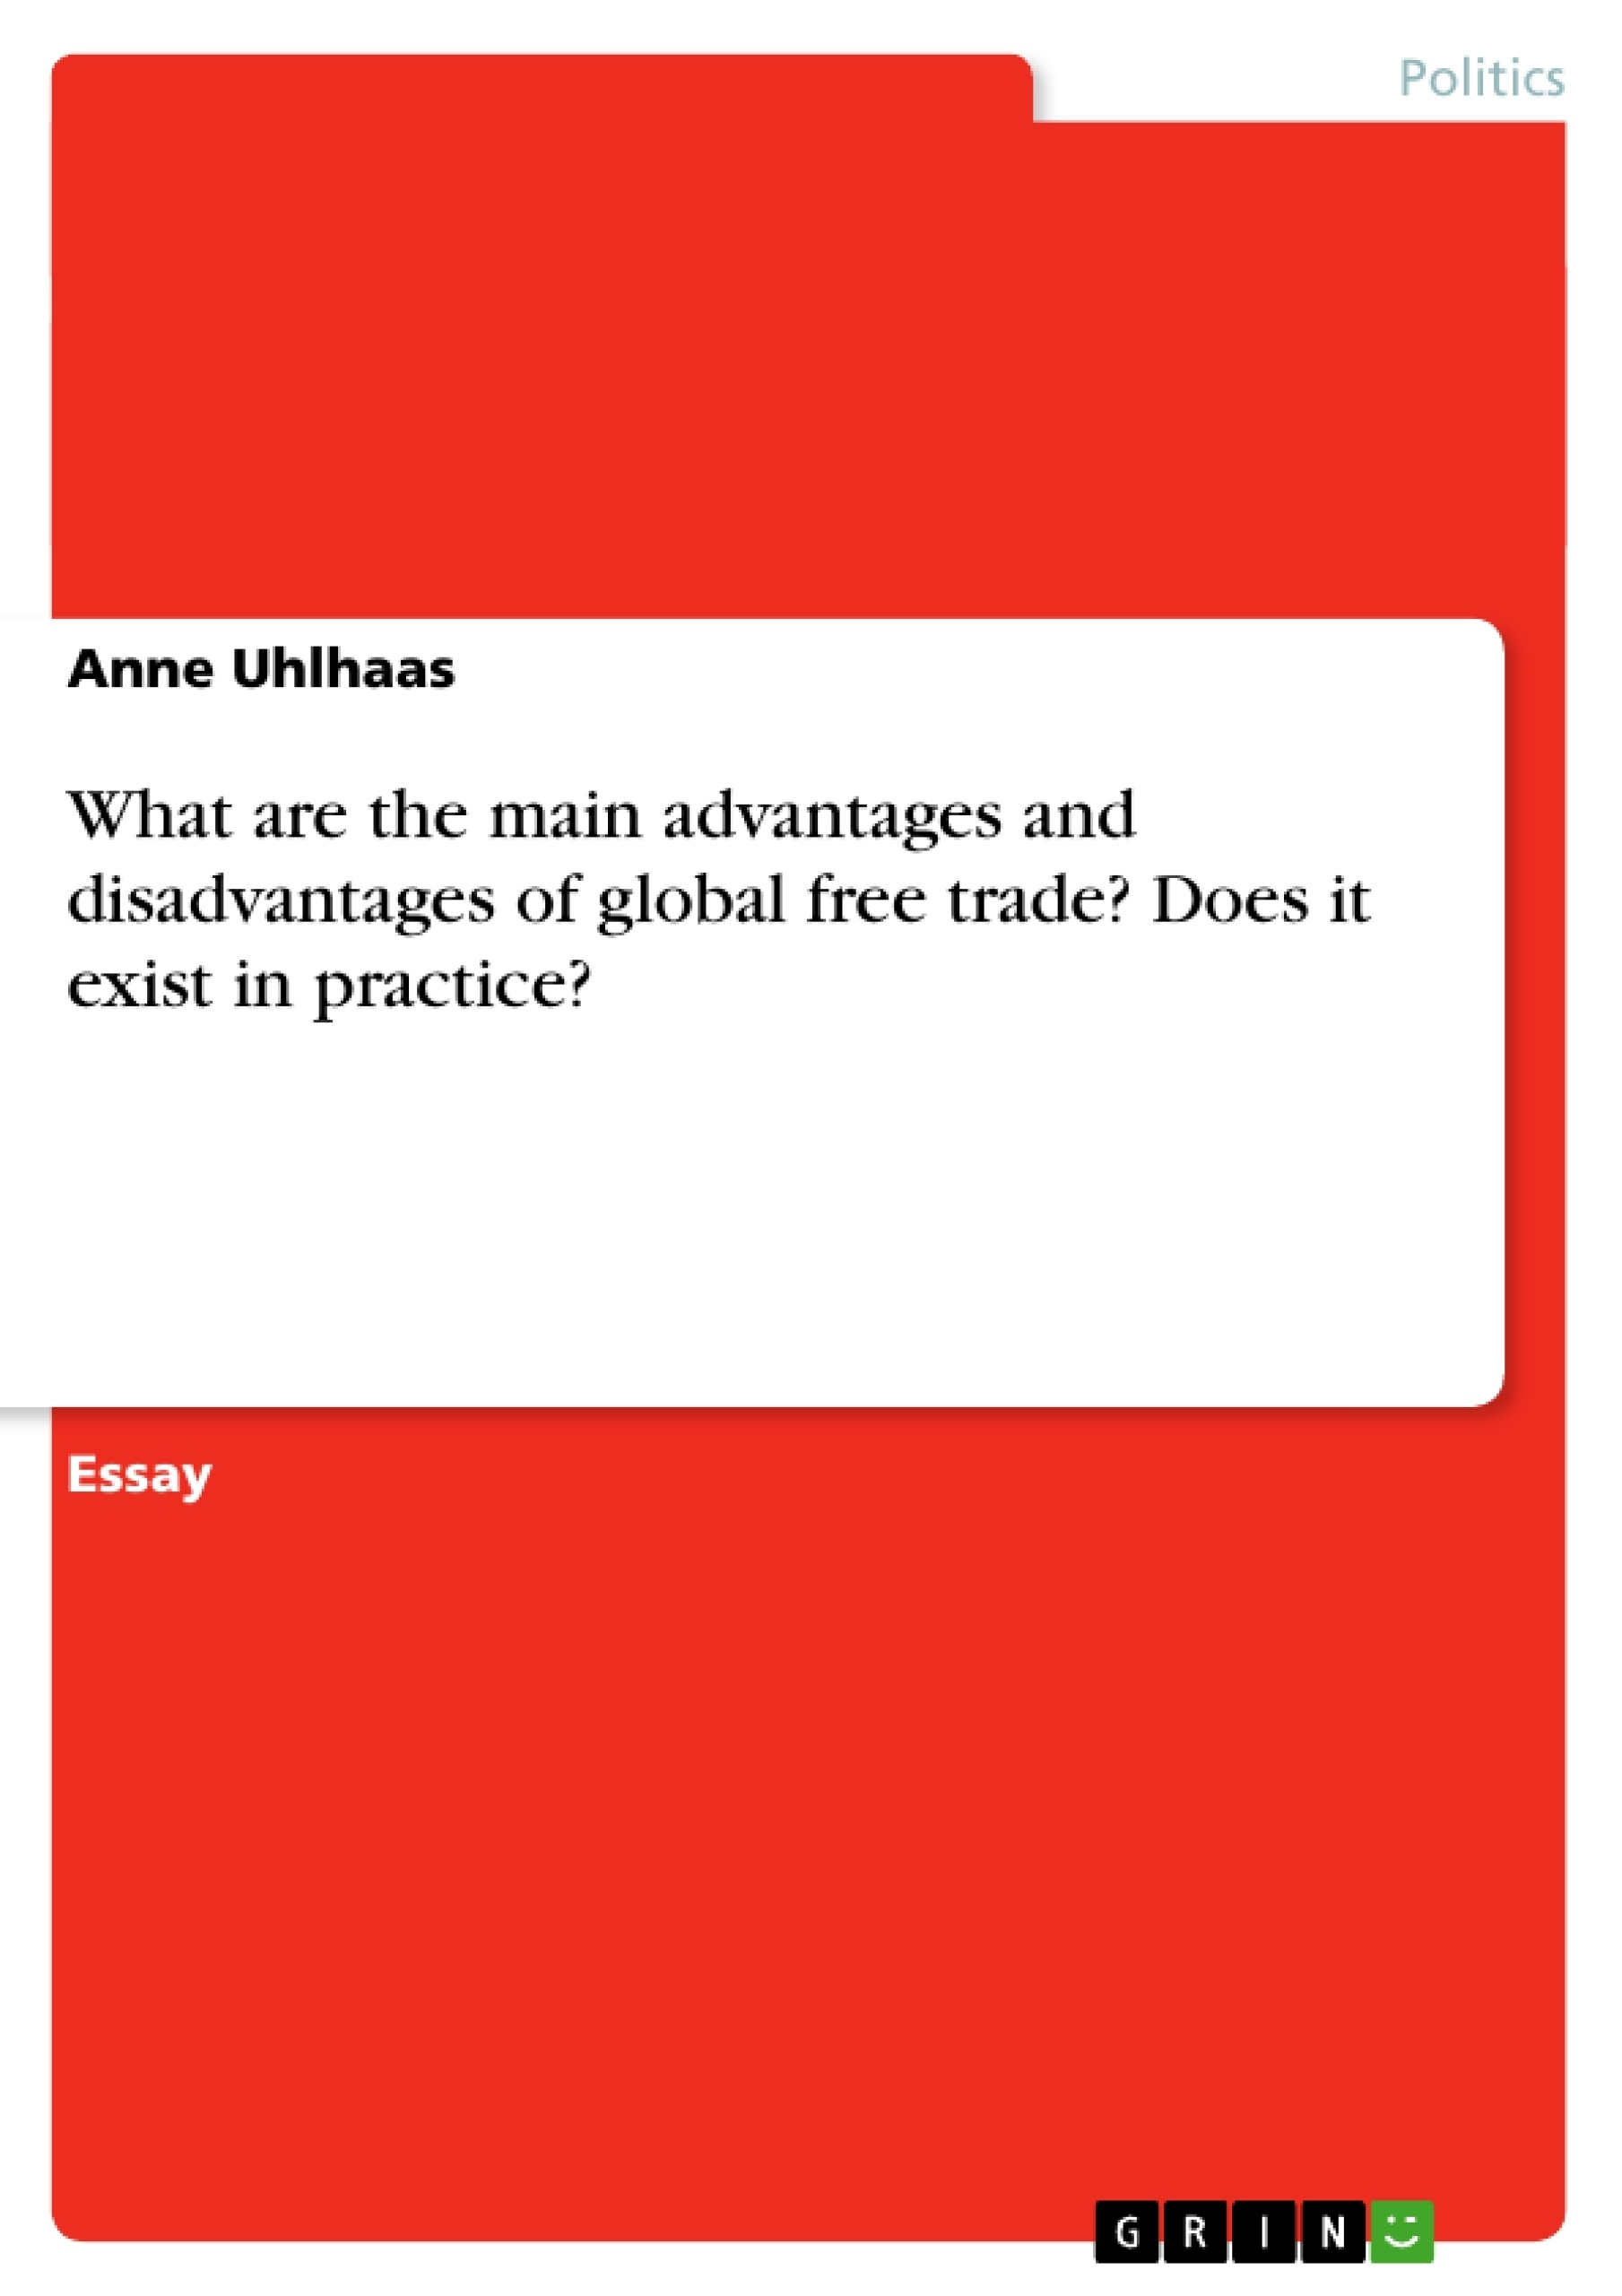 advantages and disadvantages of free trade economics essay Readers question: what are the advantages and disadvantages of the wto formally the gatt the wto is a body designed to promote free trade through organizing trade negotiations and act as an independent arbiter in settling trade disputes.